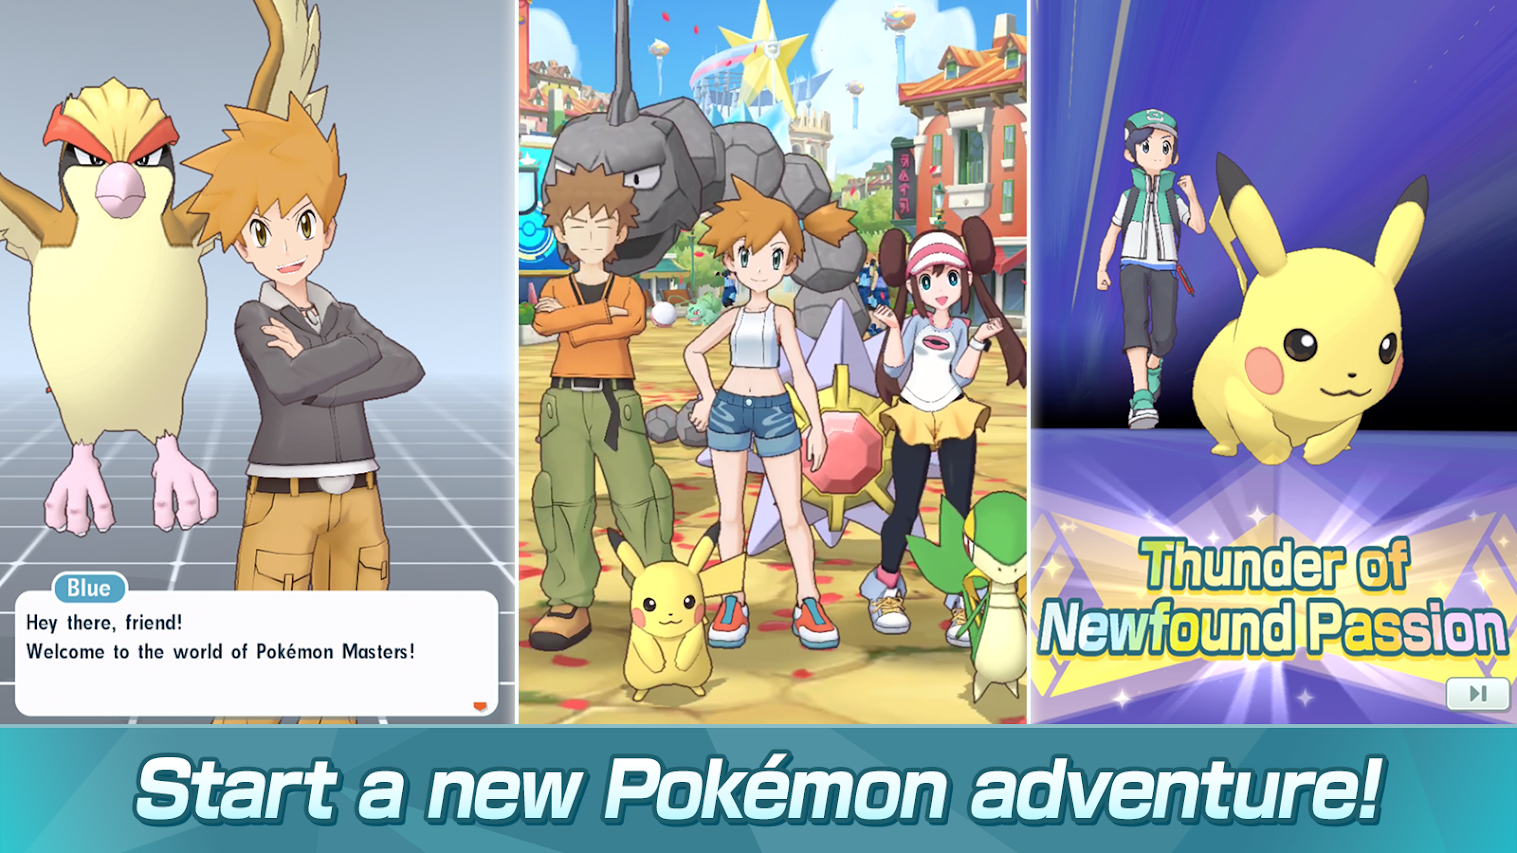 Pokémon Masters is now available for pre-registration on the Play Store